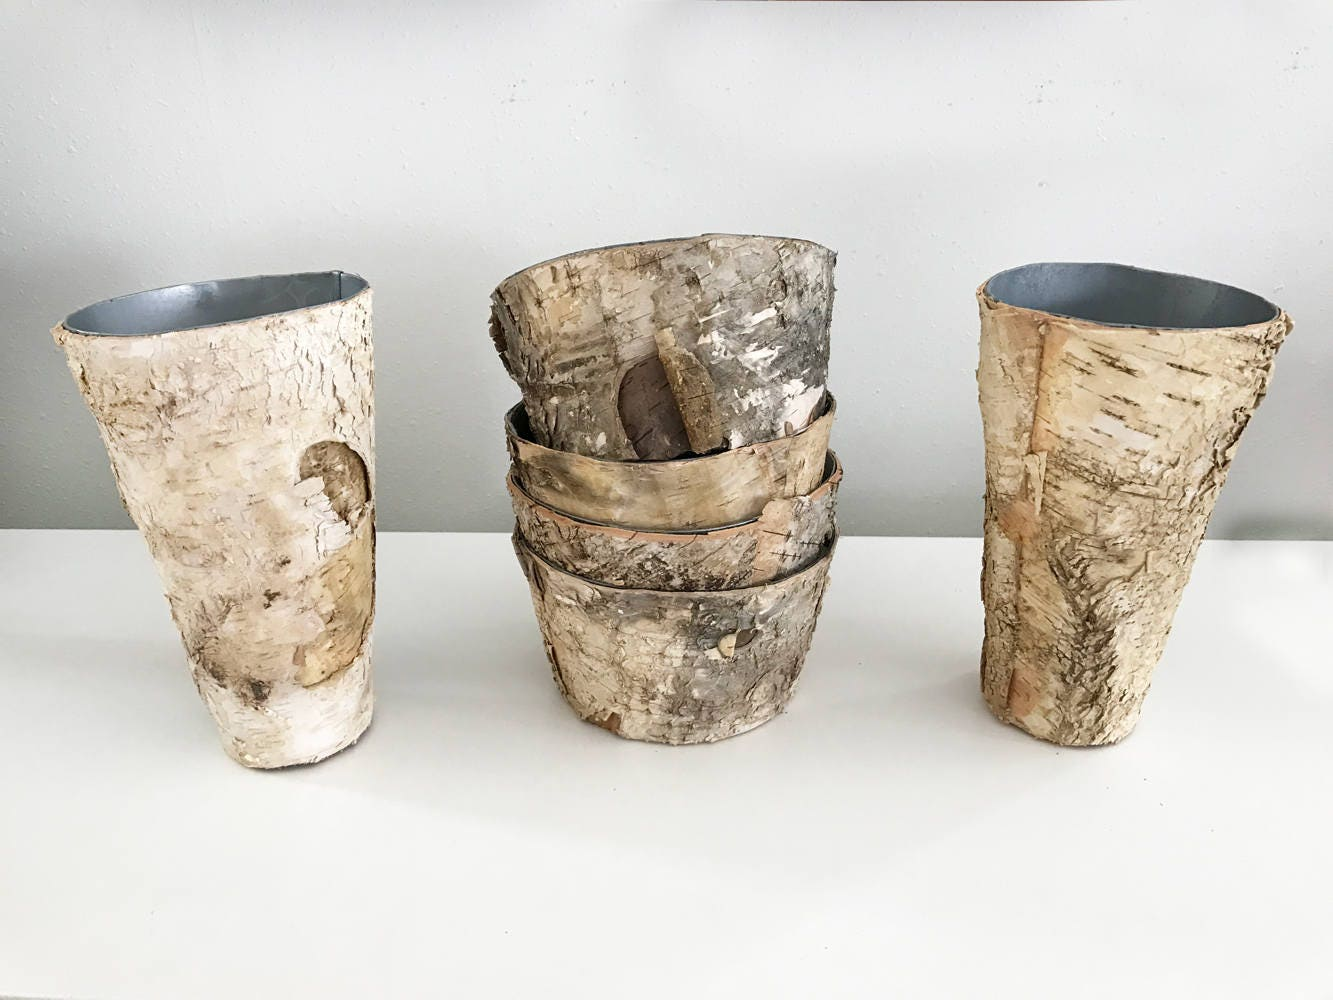 SALE HALF OFF Birch Bark Vase and Pot Wood Wrapped Planters my have ...